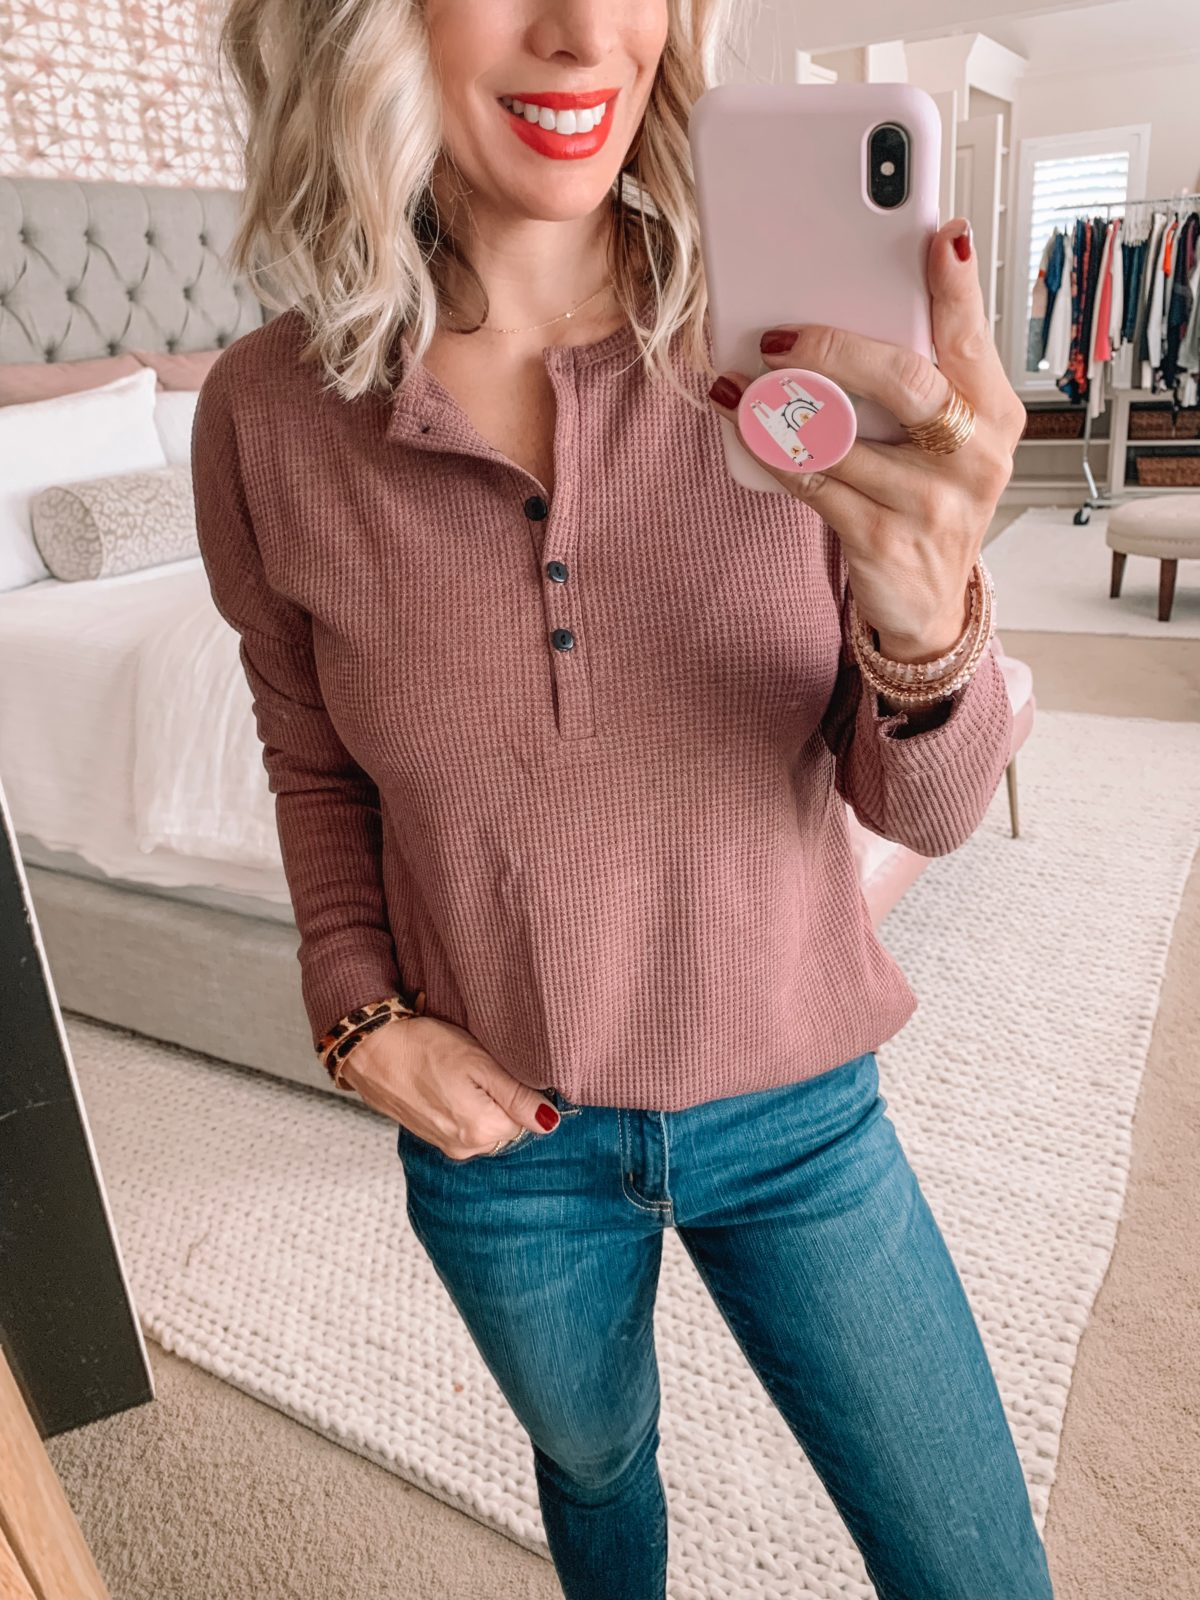 Amazon Prime Fashion- Henley Top and Jeans